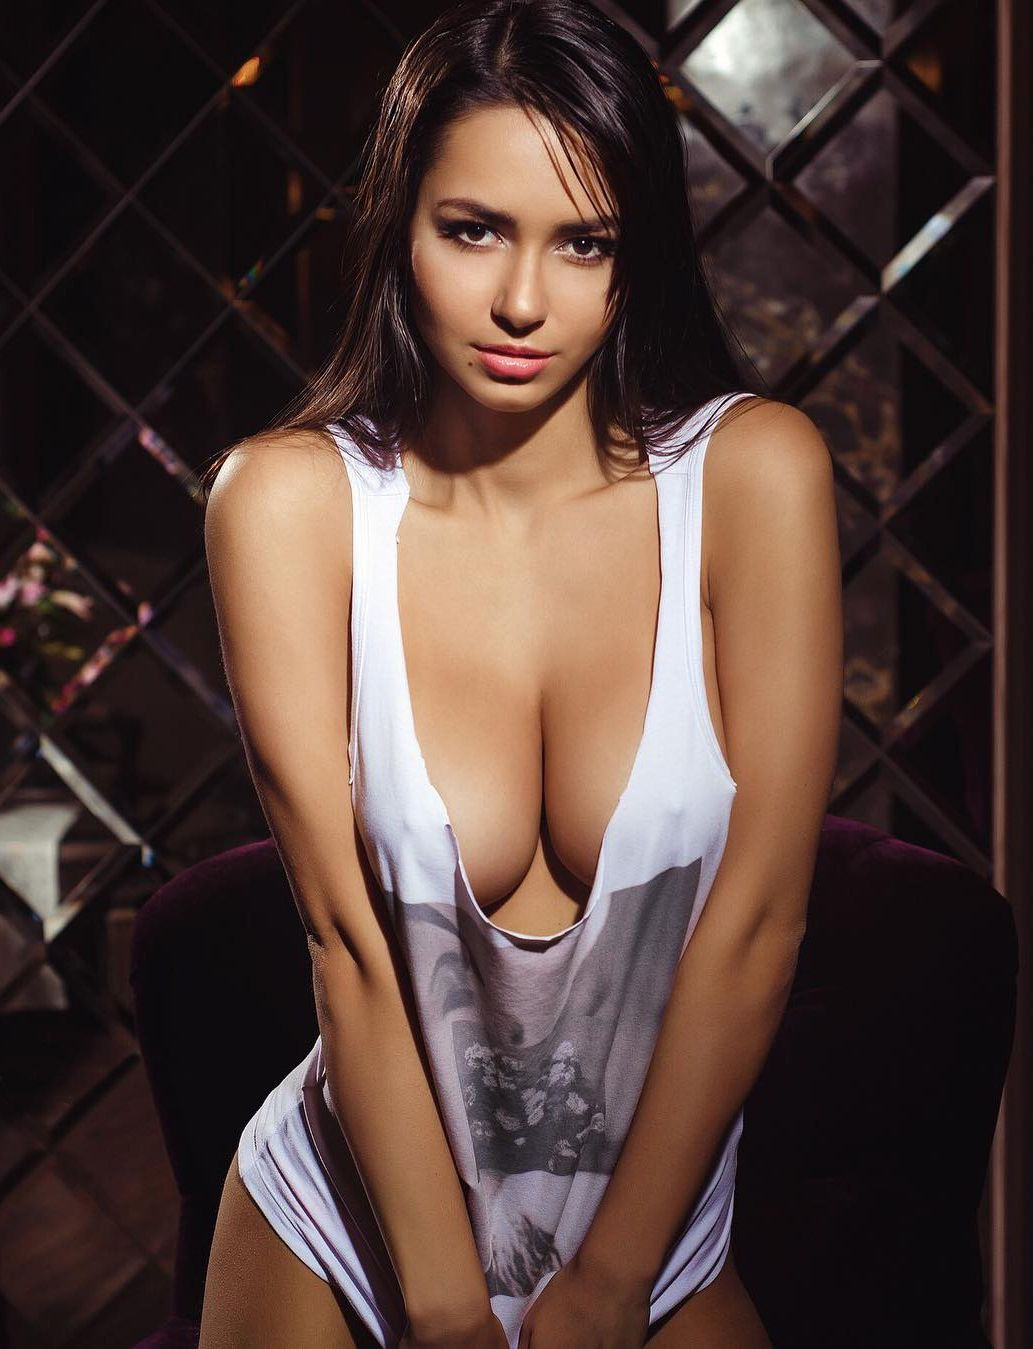 ICloud Helga Lovekaty naked (33 foto and video), Ass, Leaked, Boobs, braless 2015